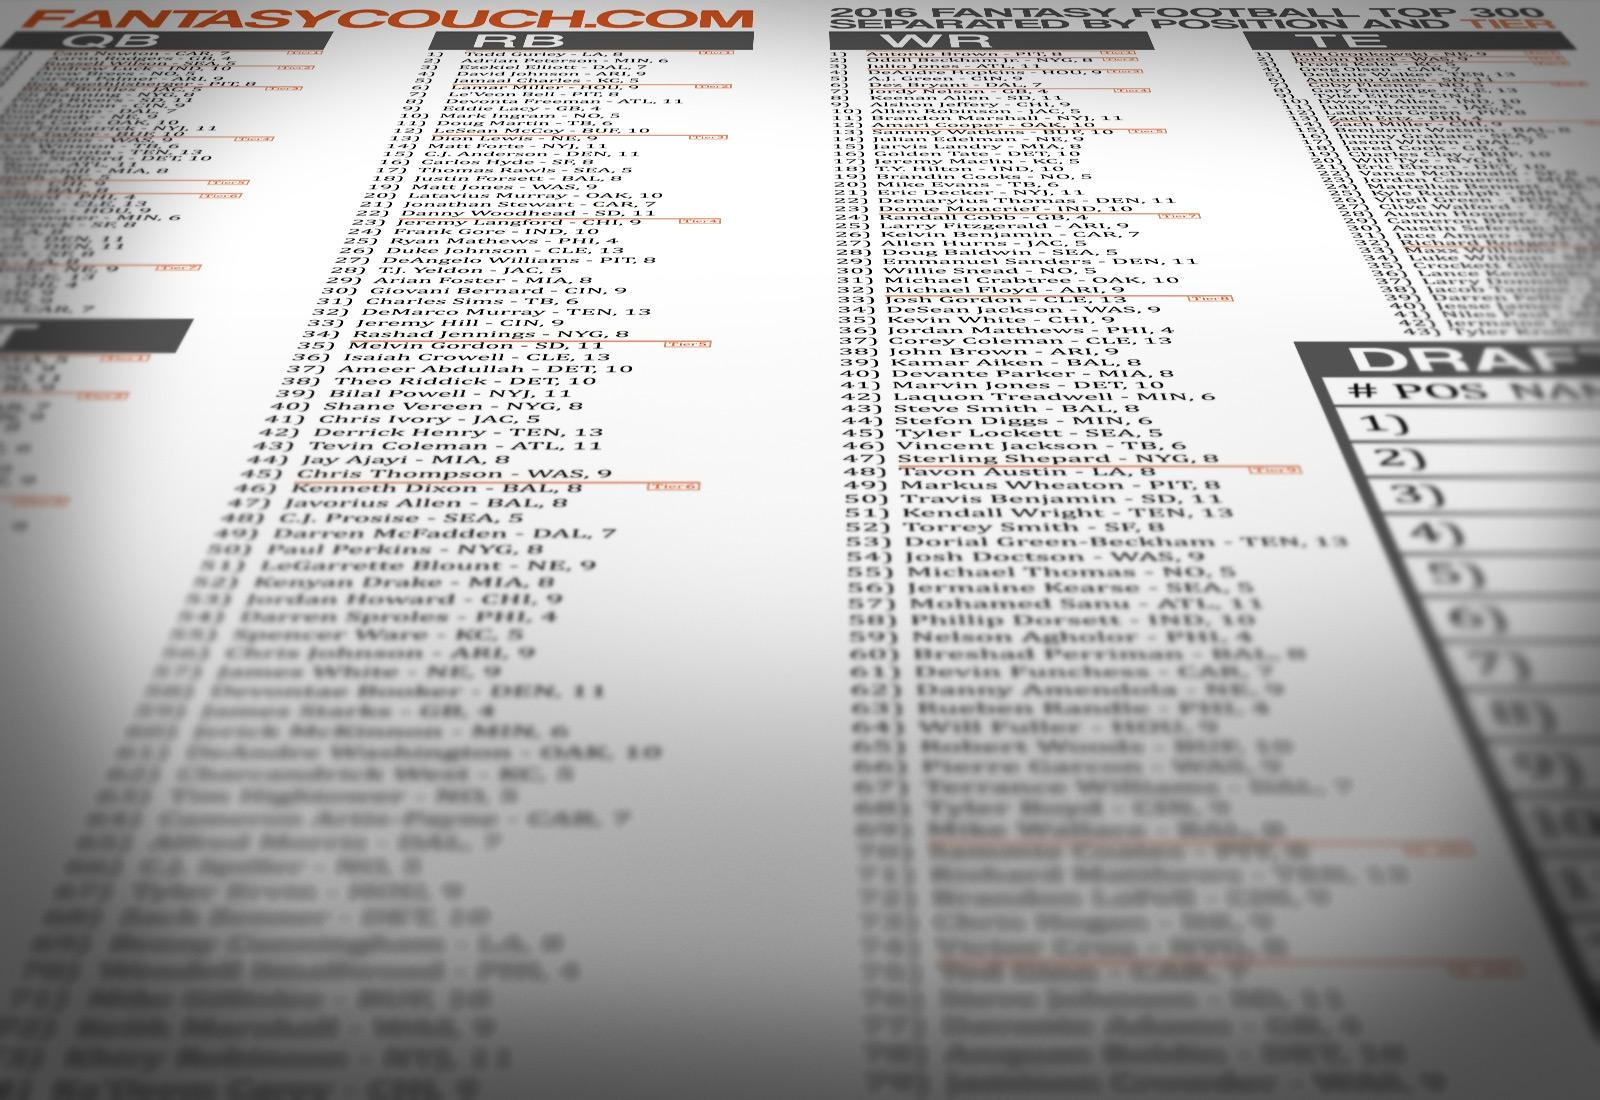 Top 300 List - Fantasy Football 2018 Cheat Sheet - Free Fantasy Football Draft Kit Printable